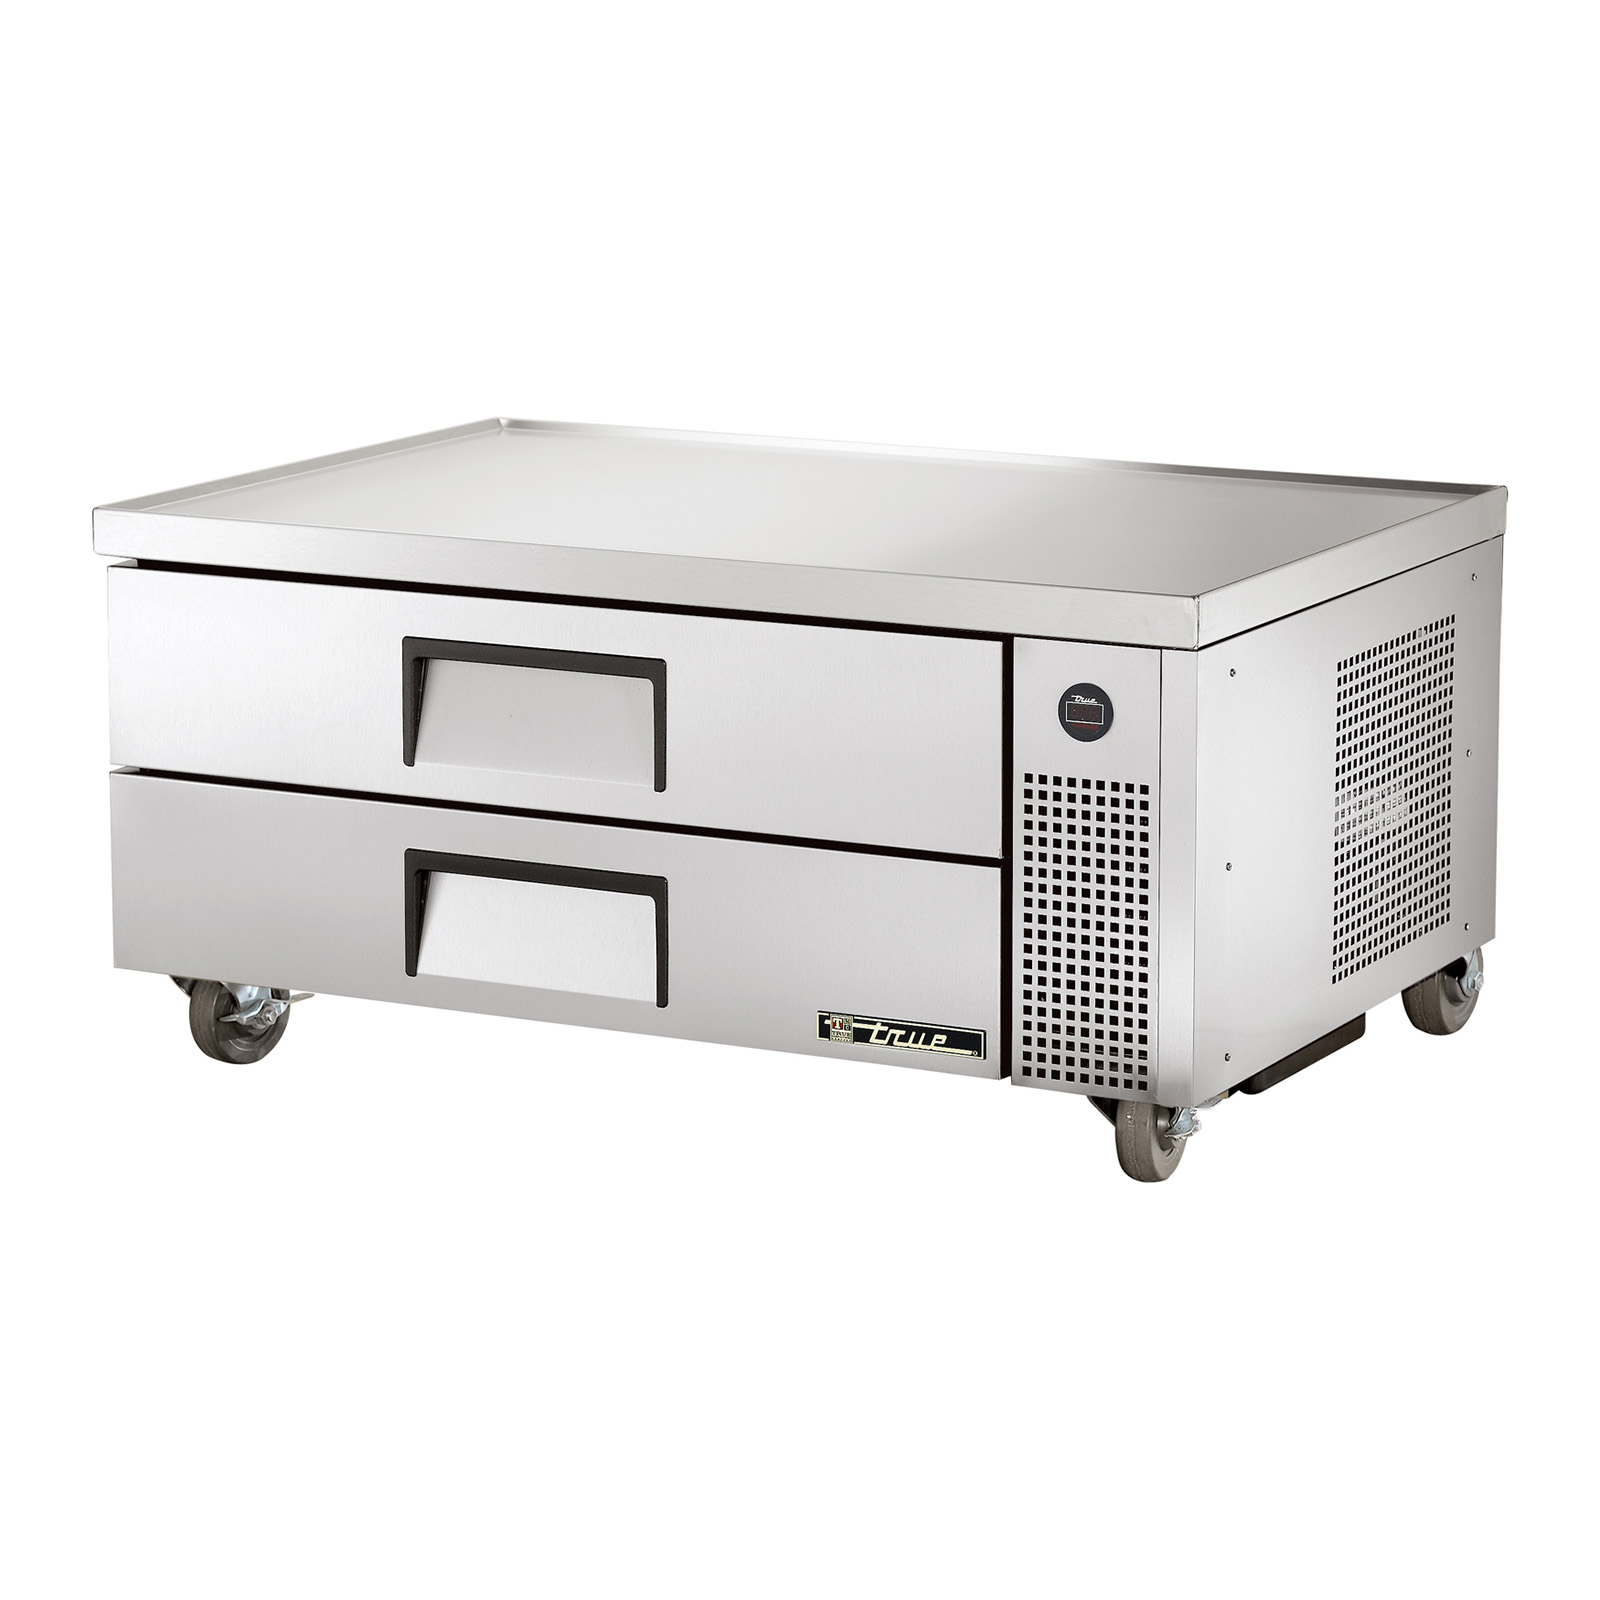 TRCB-52 True - Refrigerated Chef Base 51-7/8